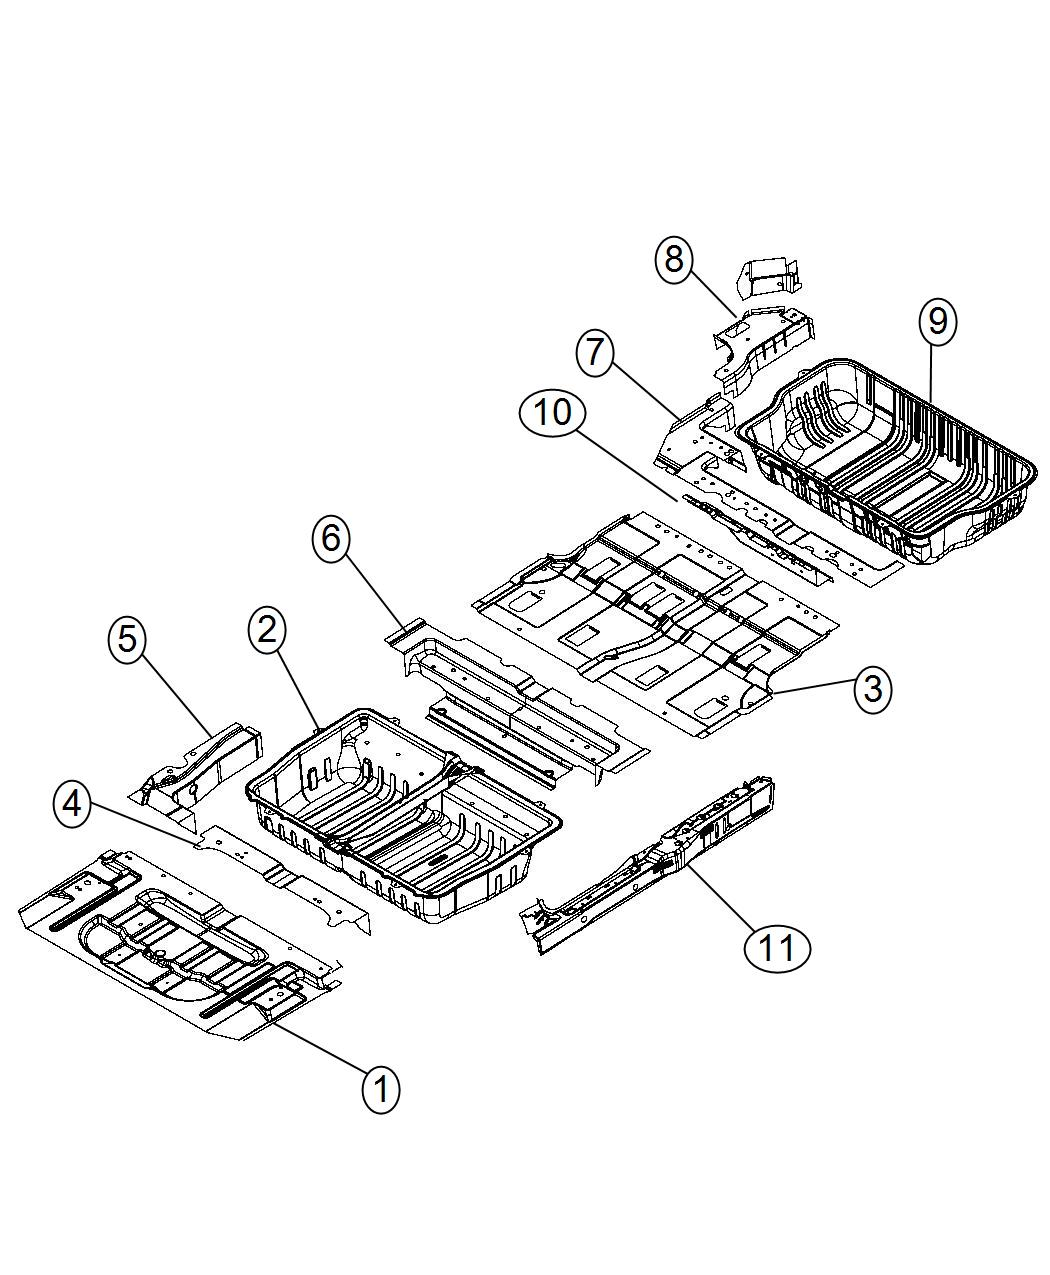 1994 Plymouth Grand Voyager Wiring Diagram • Wiring